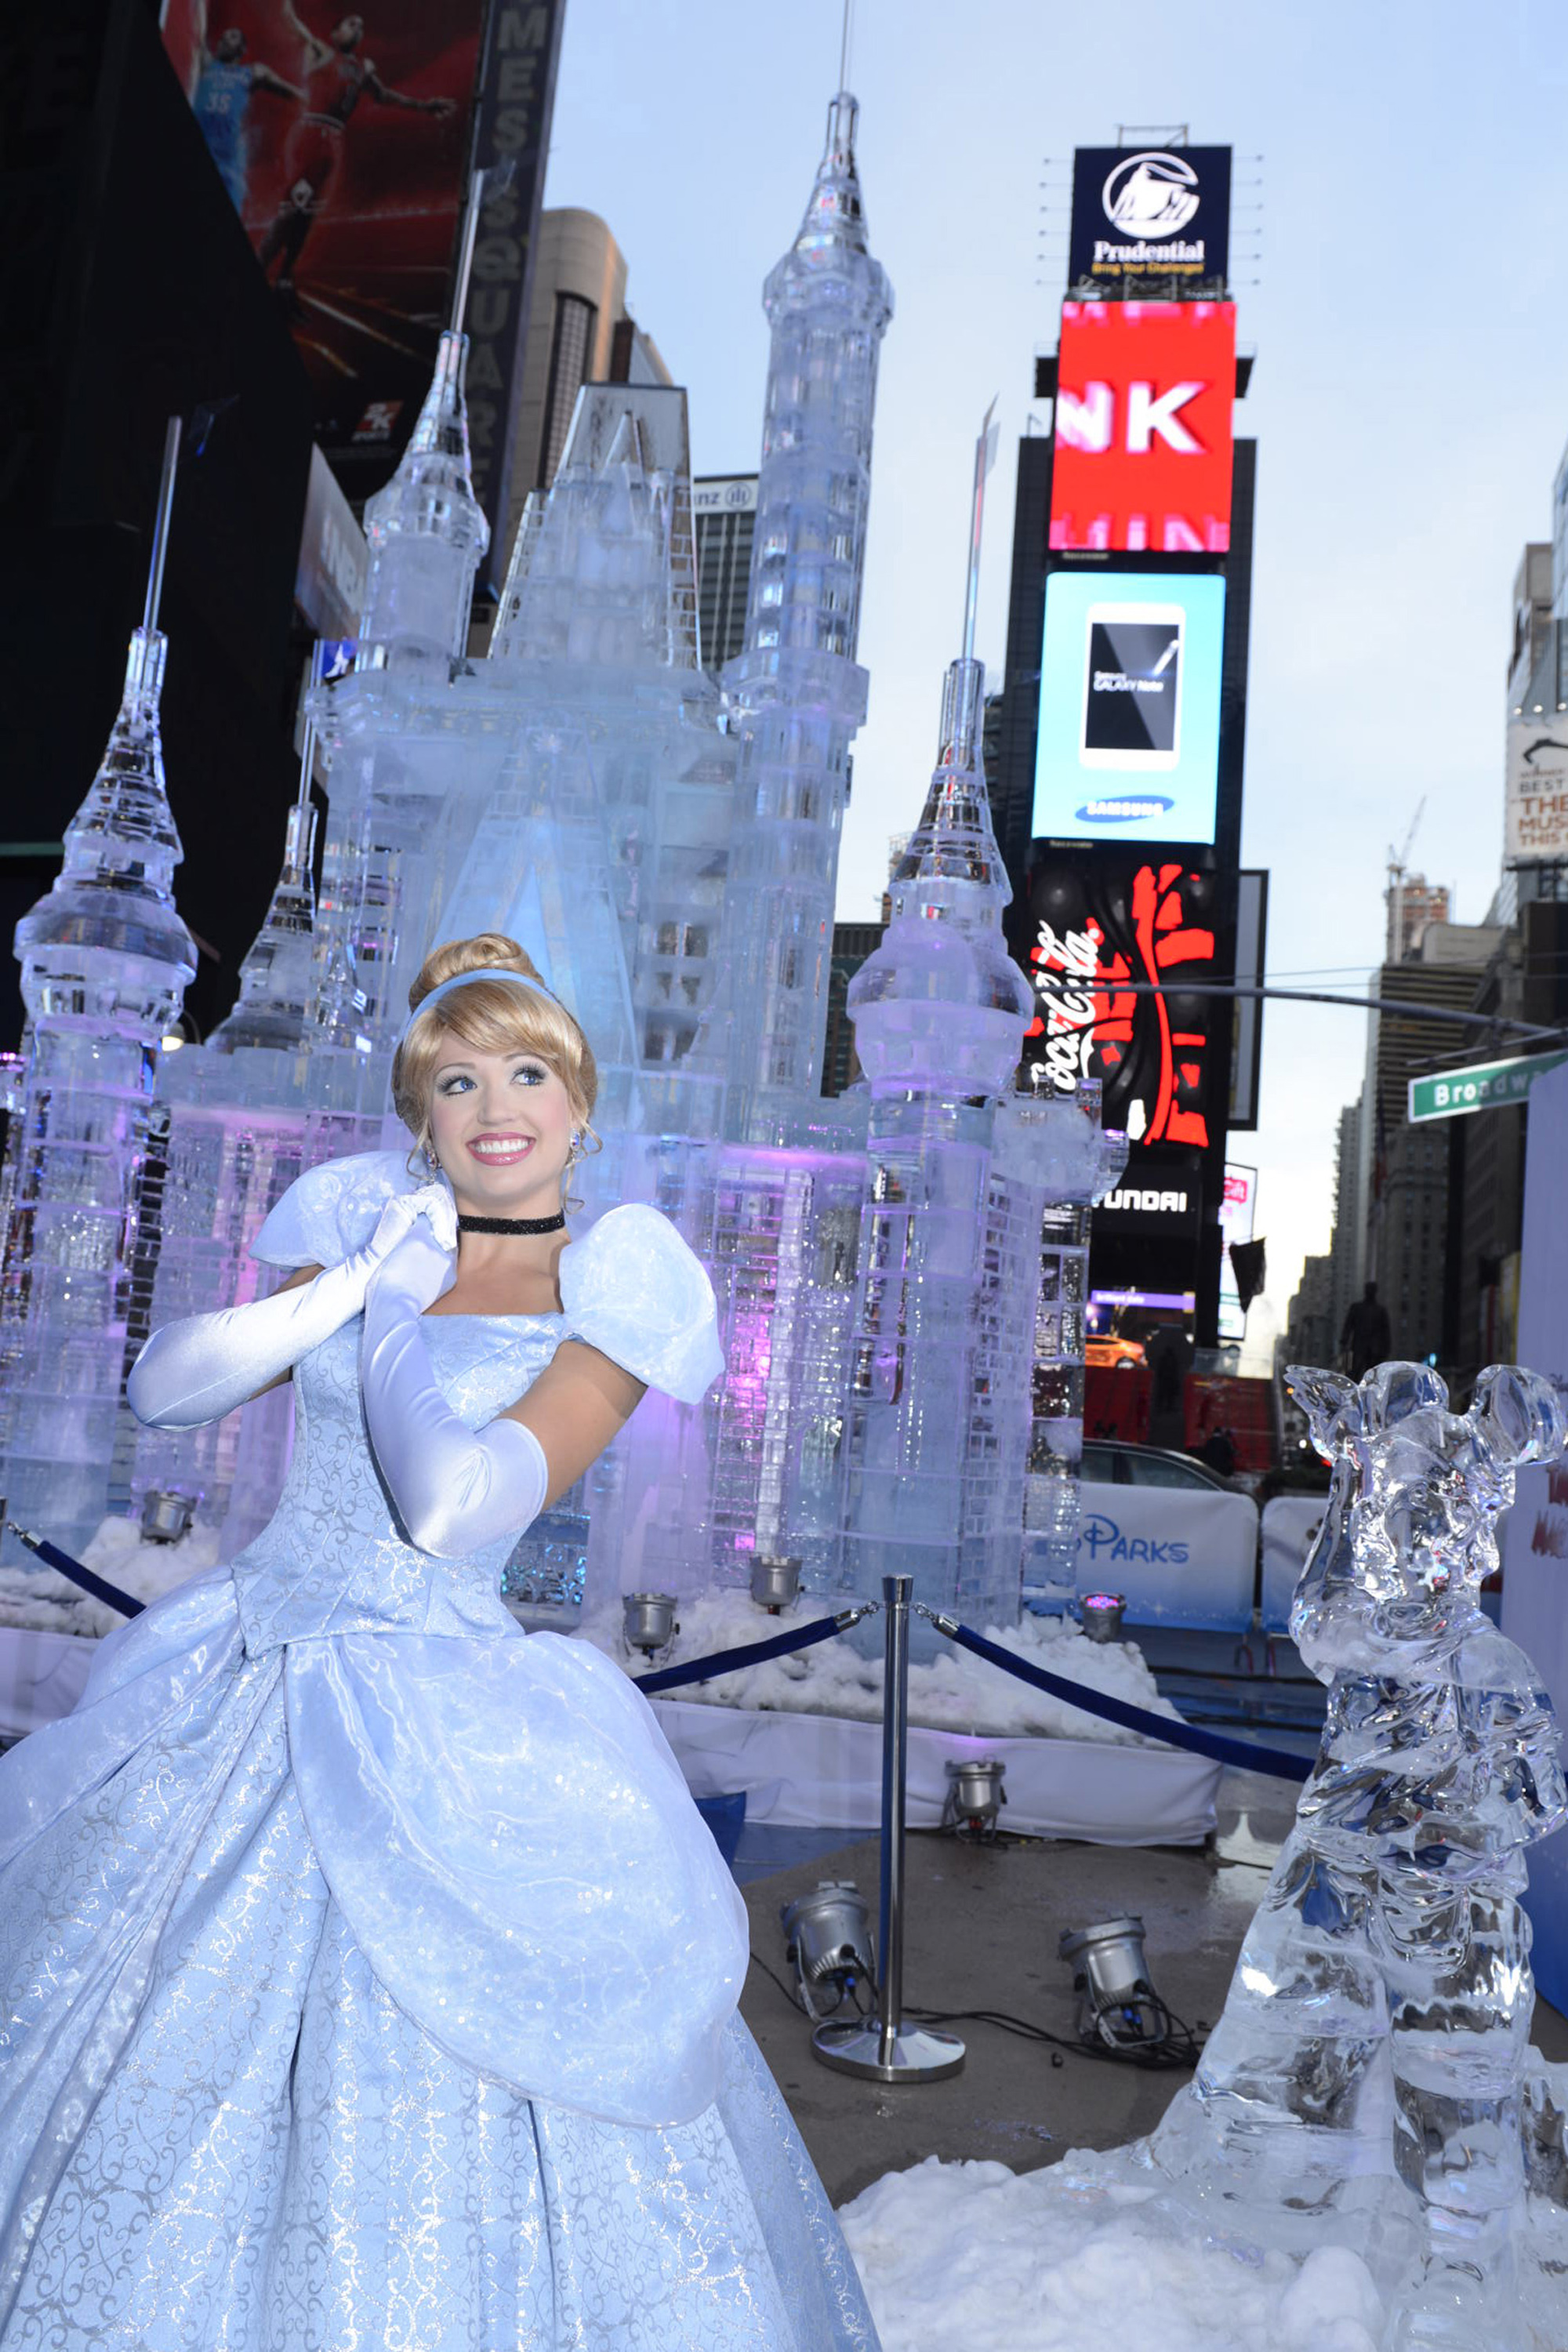 Disney Princess Cinderella poses Oct. 17, 2012 in front of a 25-foot-tall ice castle sculpture in Times Square in New York City.   ( David Roark/Disney Parks via Getty Images)